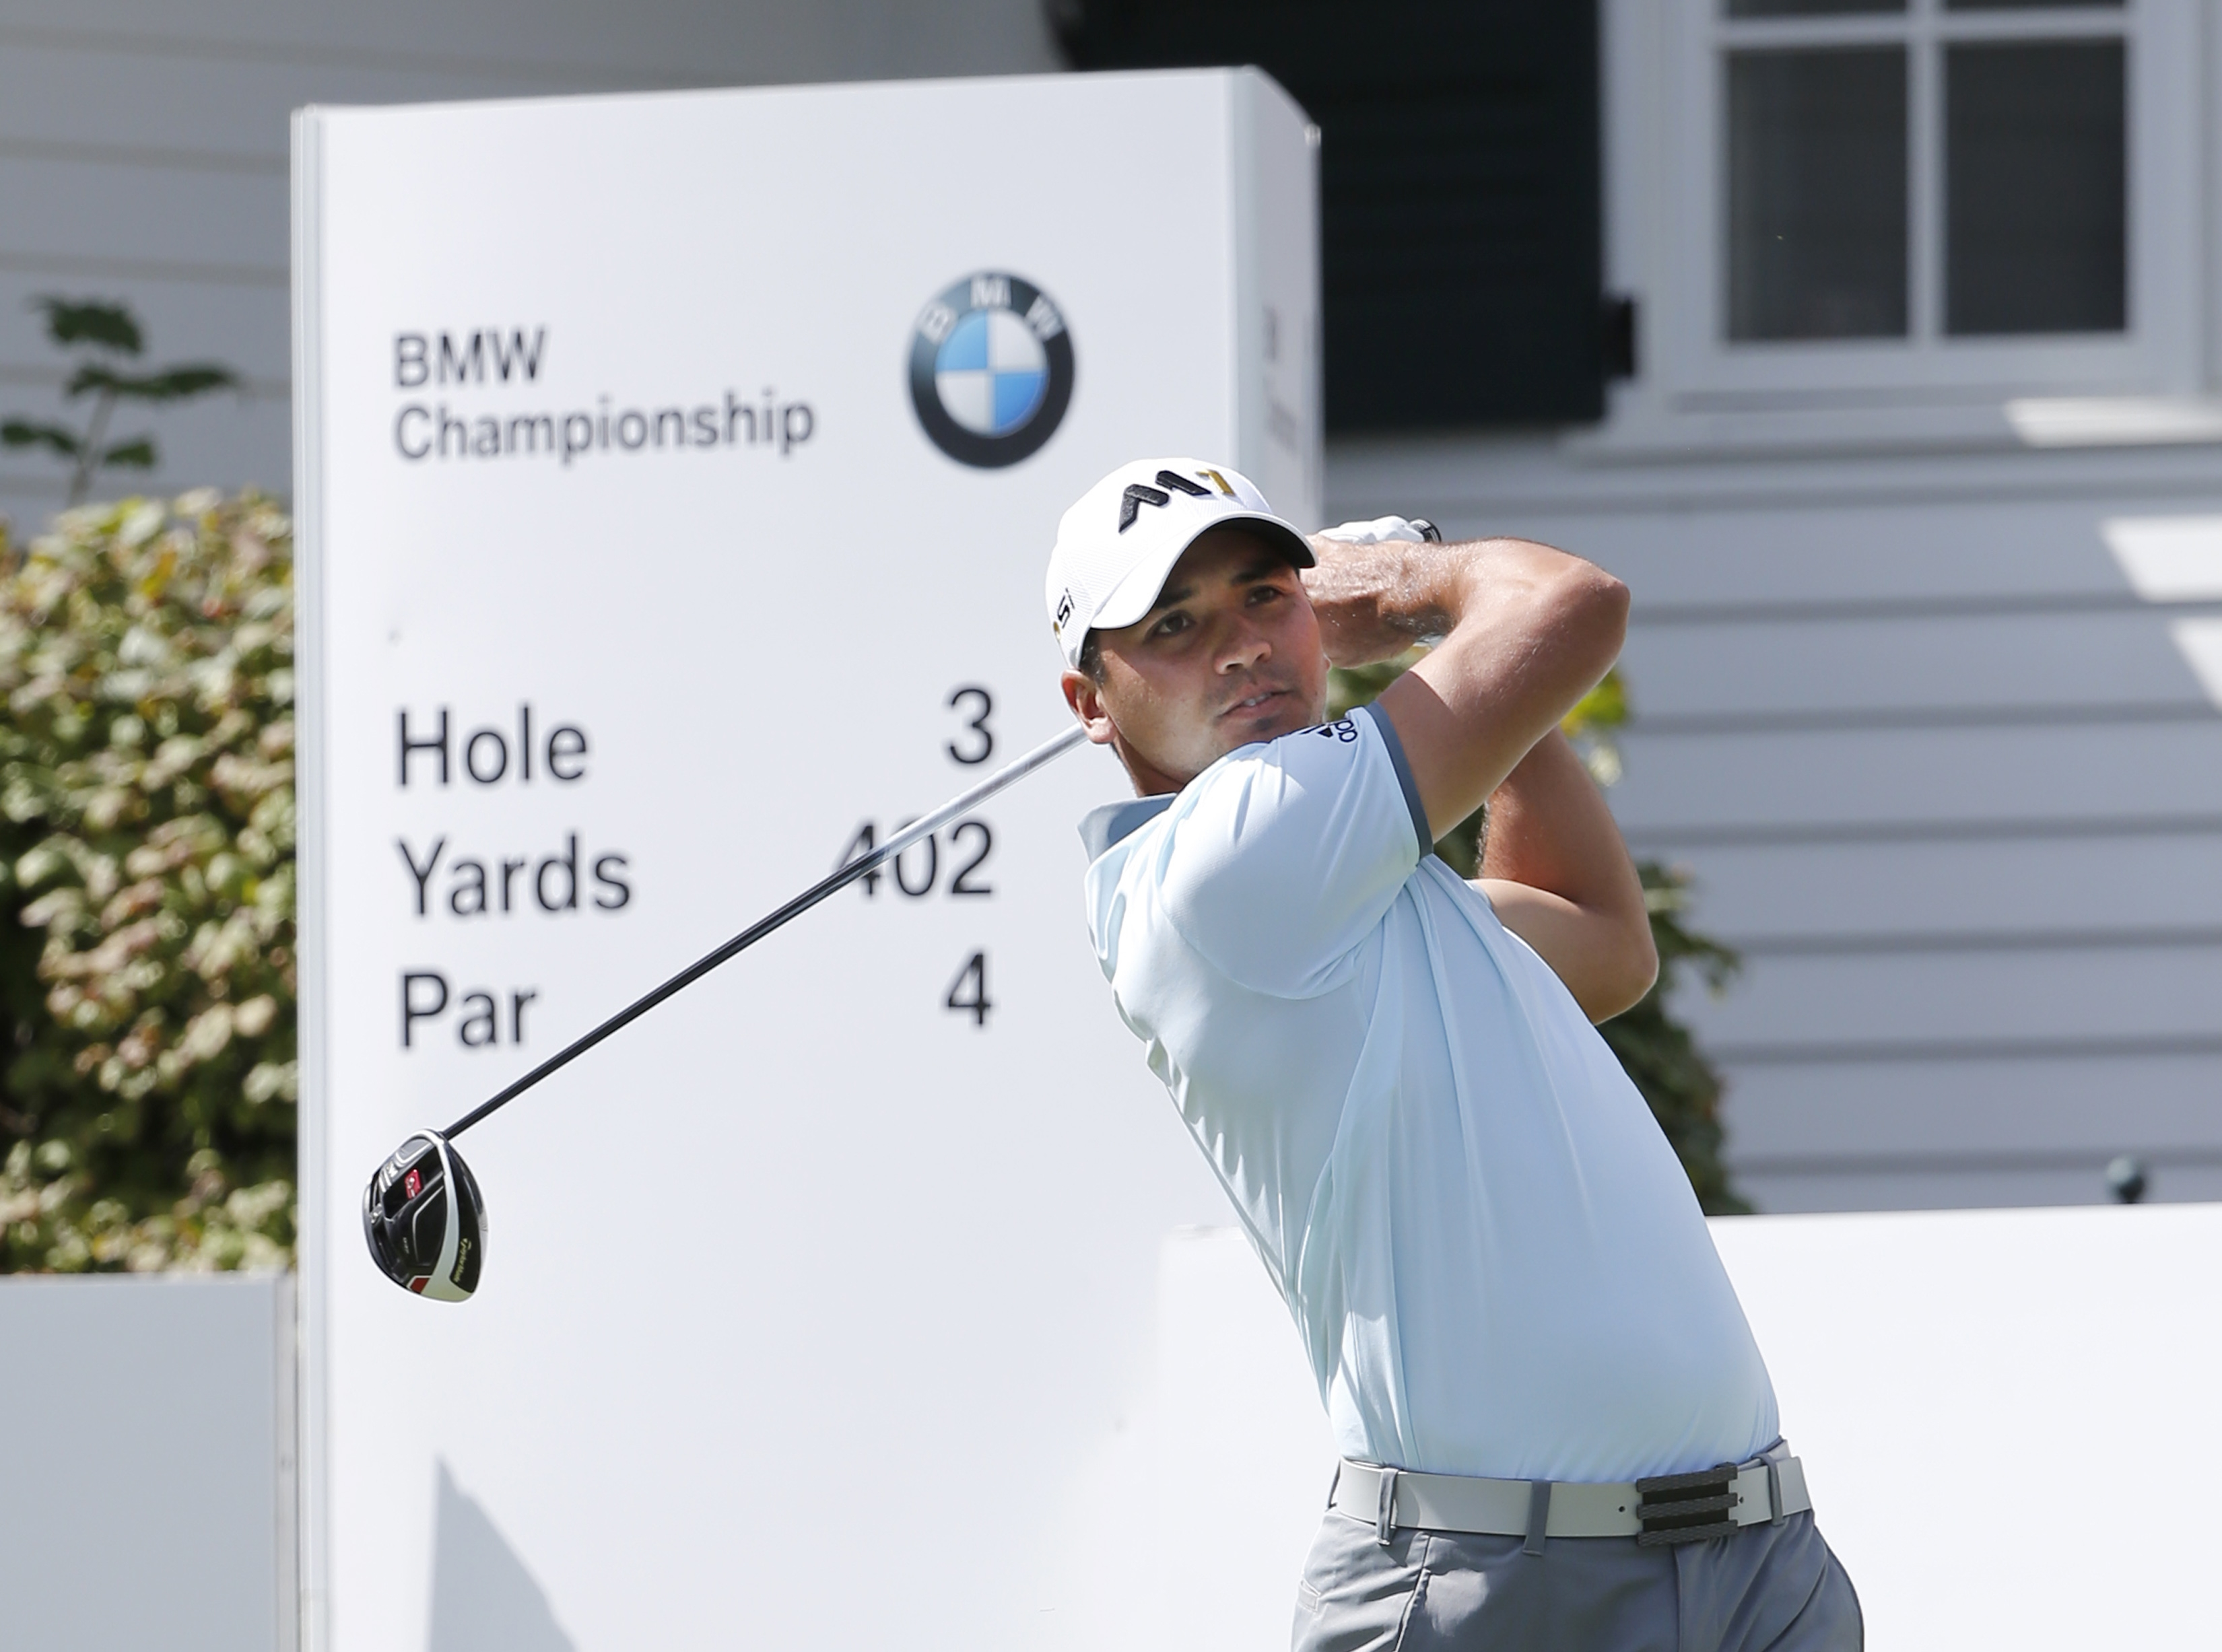 Jason Day,, of Australia, watches his tee shot on the third hole during the third round of the BMW Championship golf tournament at Conway Farms Golf Club, Saturday, Sept. 19, 2015, in Lake Forest, Ill. (AP Photo/Charles Rex Arbogast)